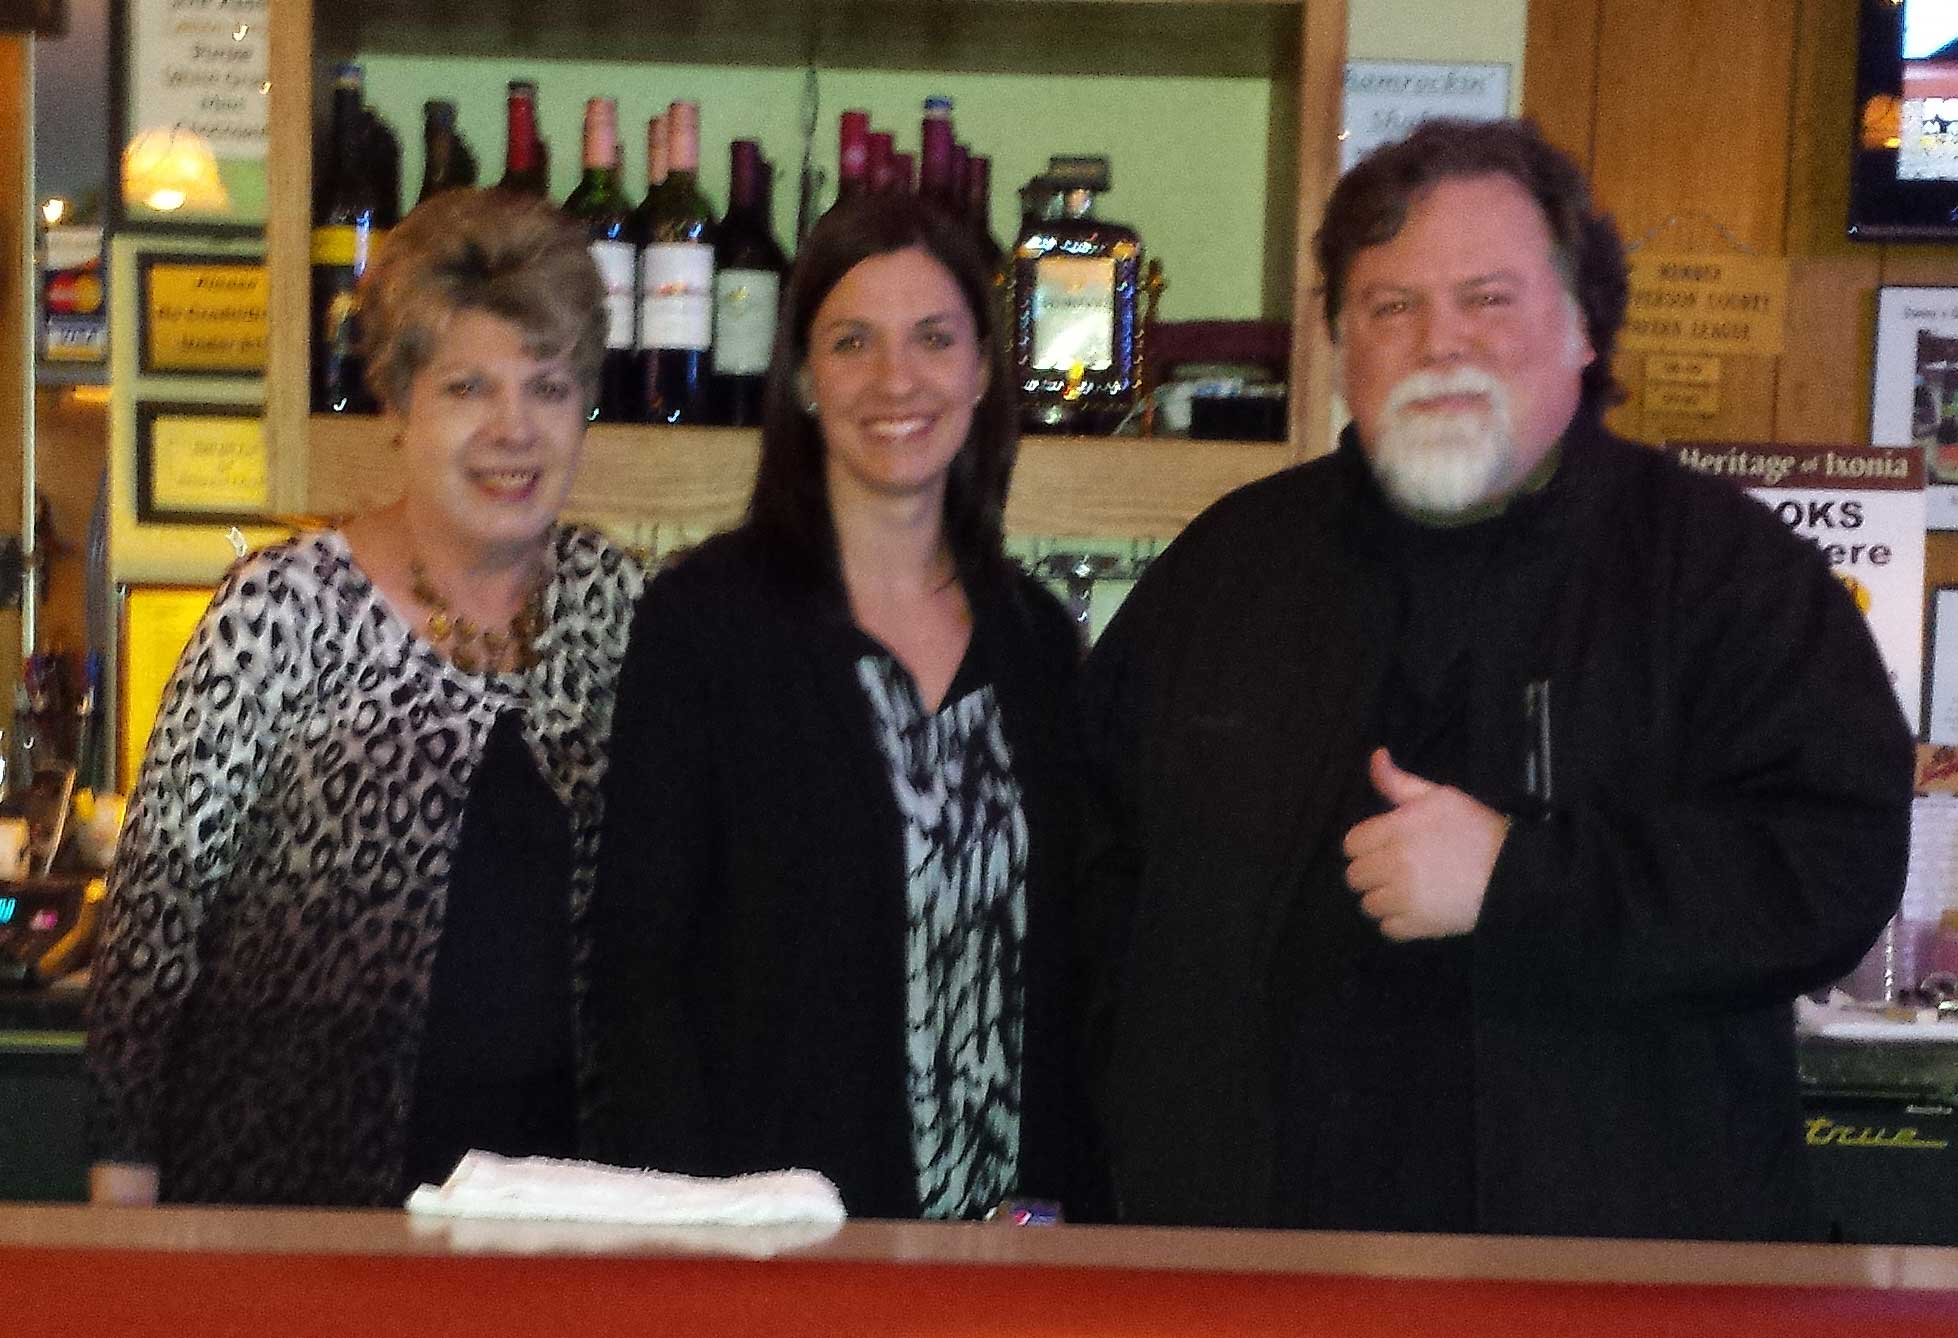 Ron Faiola, Wisconsin Supper Club author and documentary producer, visits Donny's Girl Supper Club, Pipersville, WI